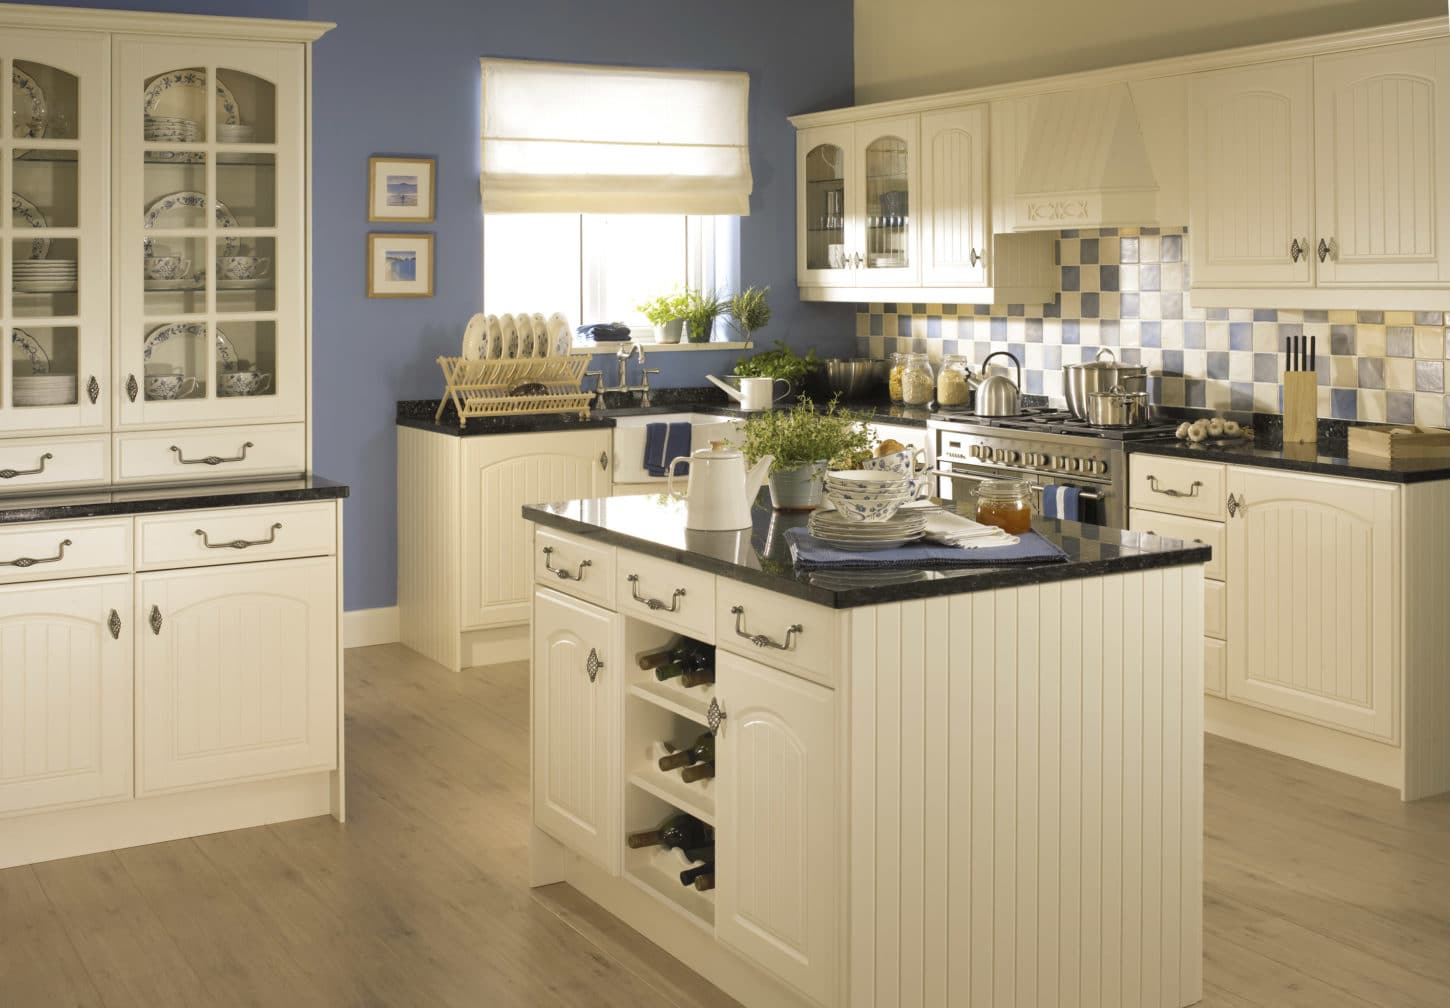 Cream Kitchen Design Cream Kitchen Photos For Design Inspiration For Your